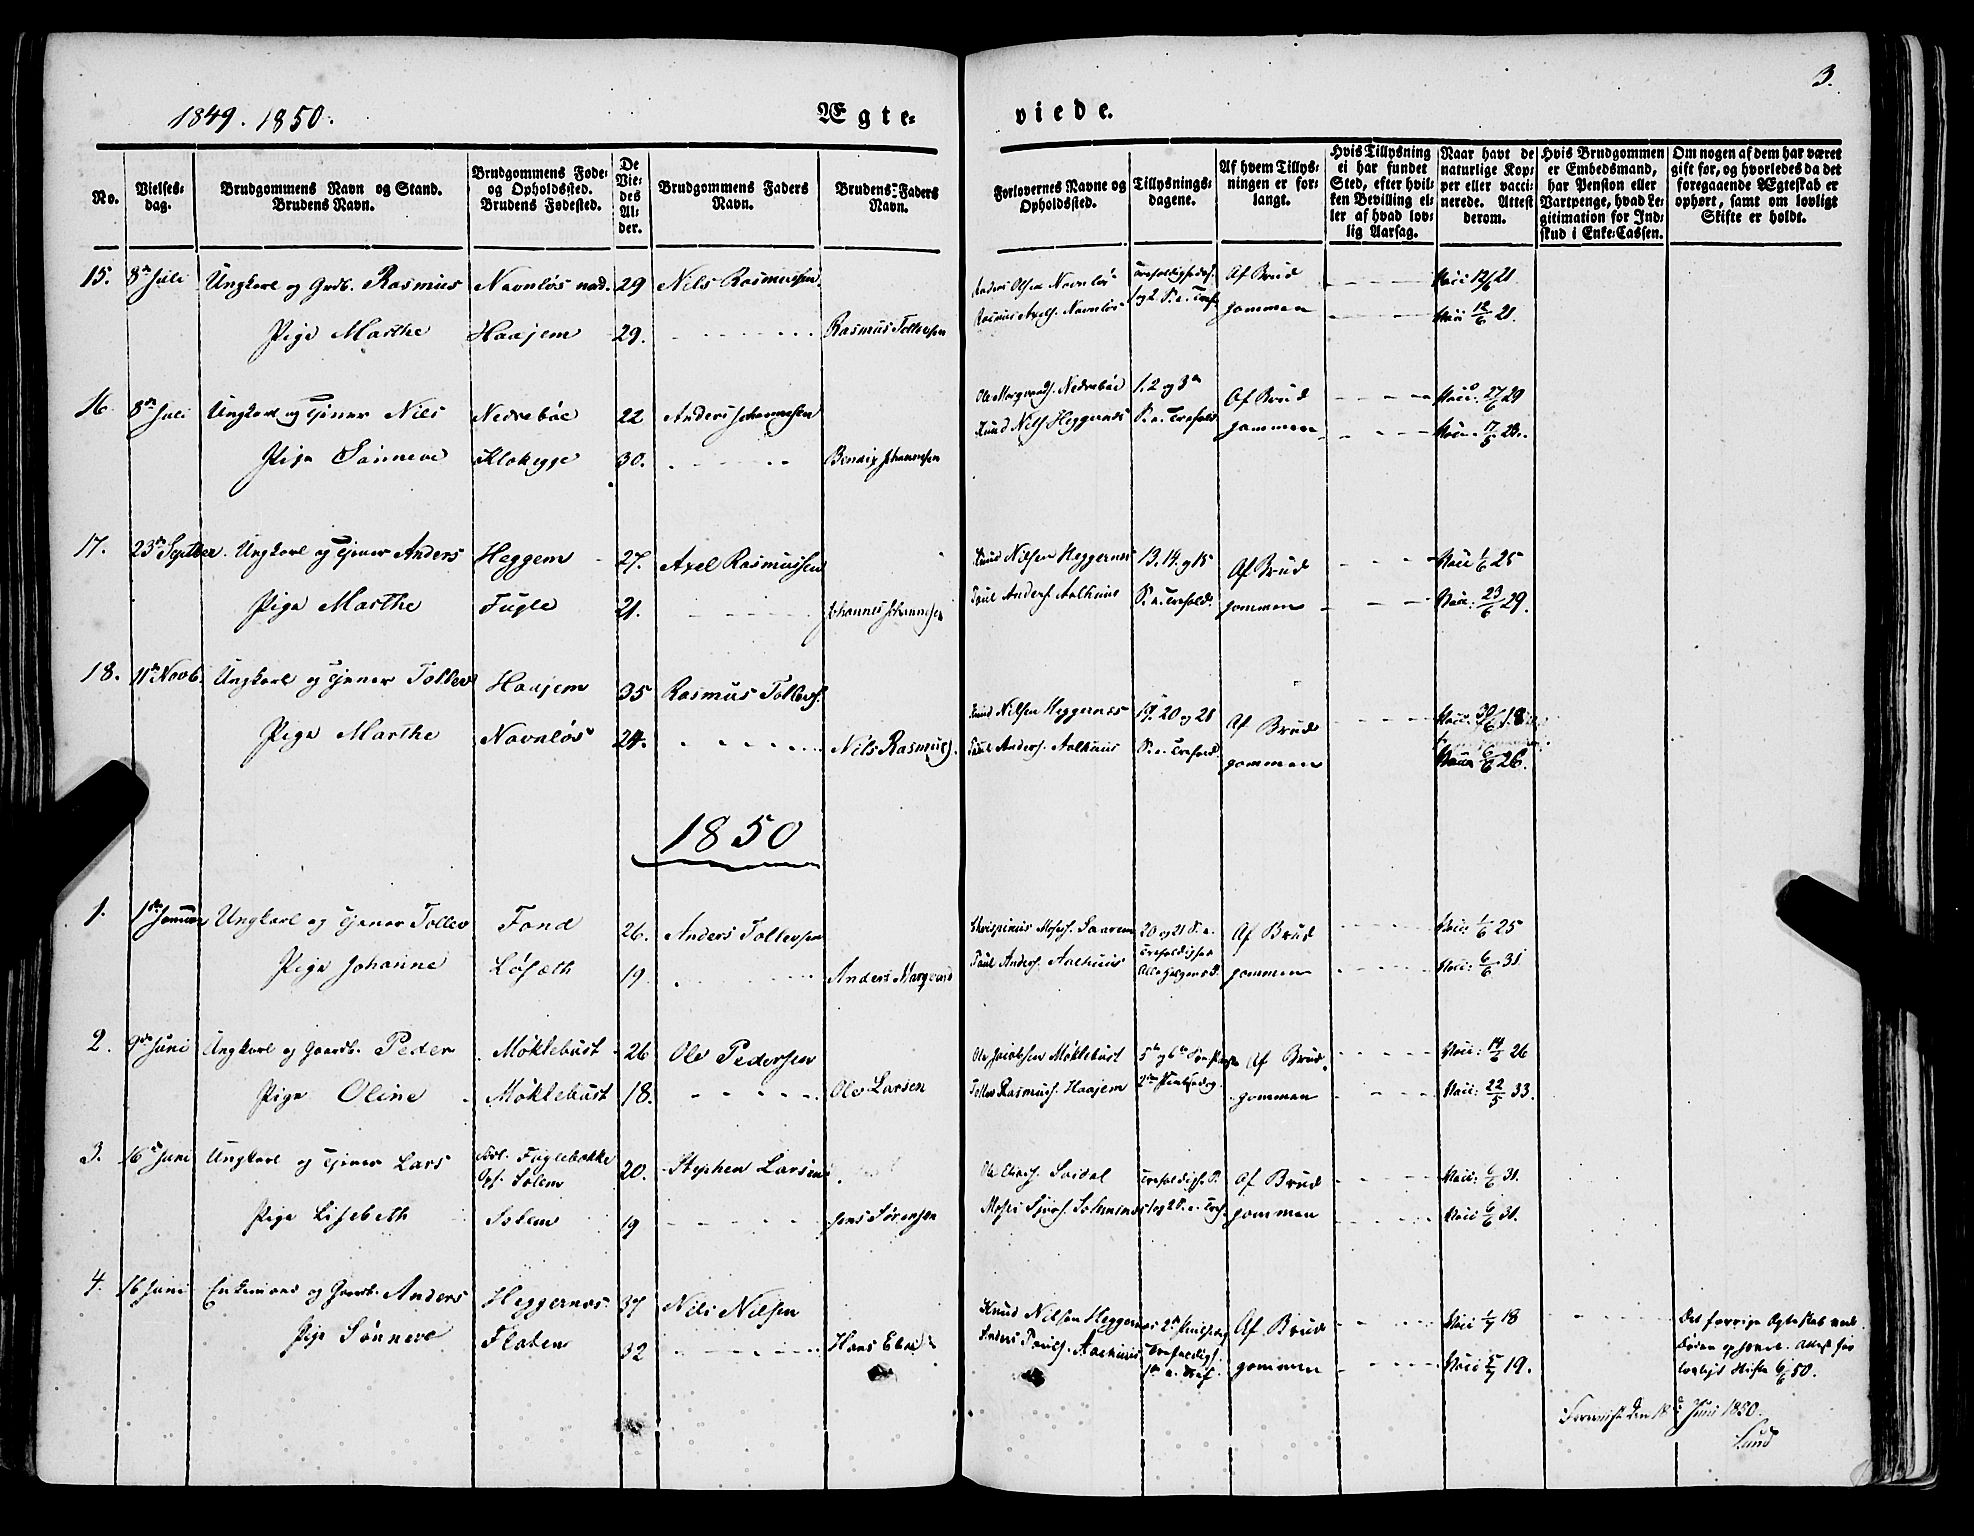 SAB, Jølster sokneprestembete, H/Haa/Haaa/L0010: Parish register (official) no. A 10, 1847-1865, p. 3